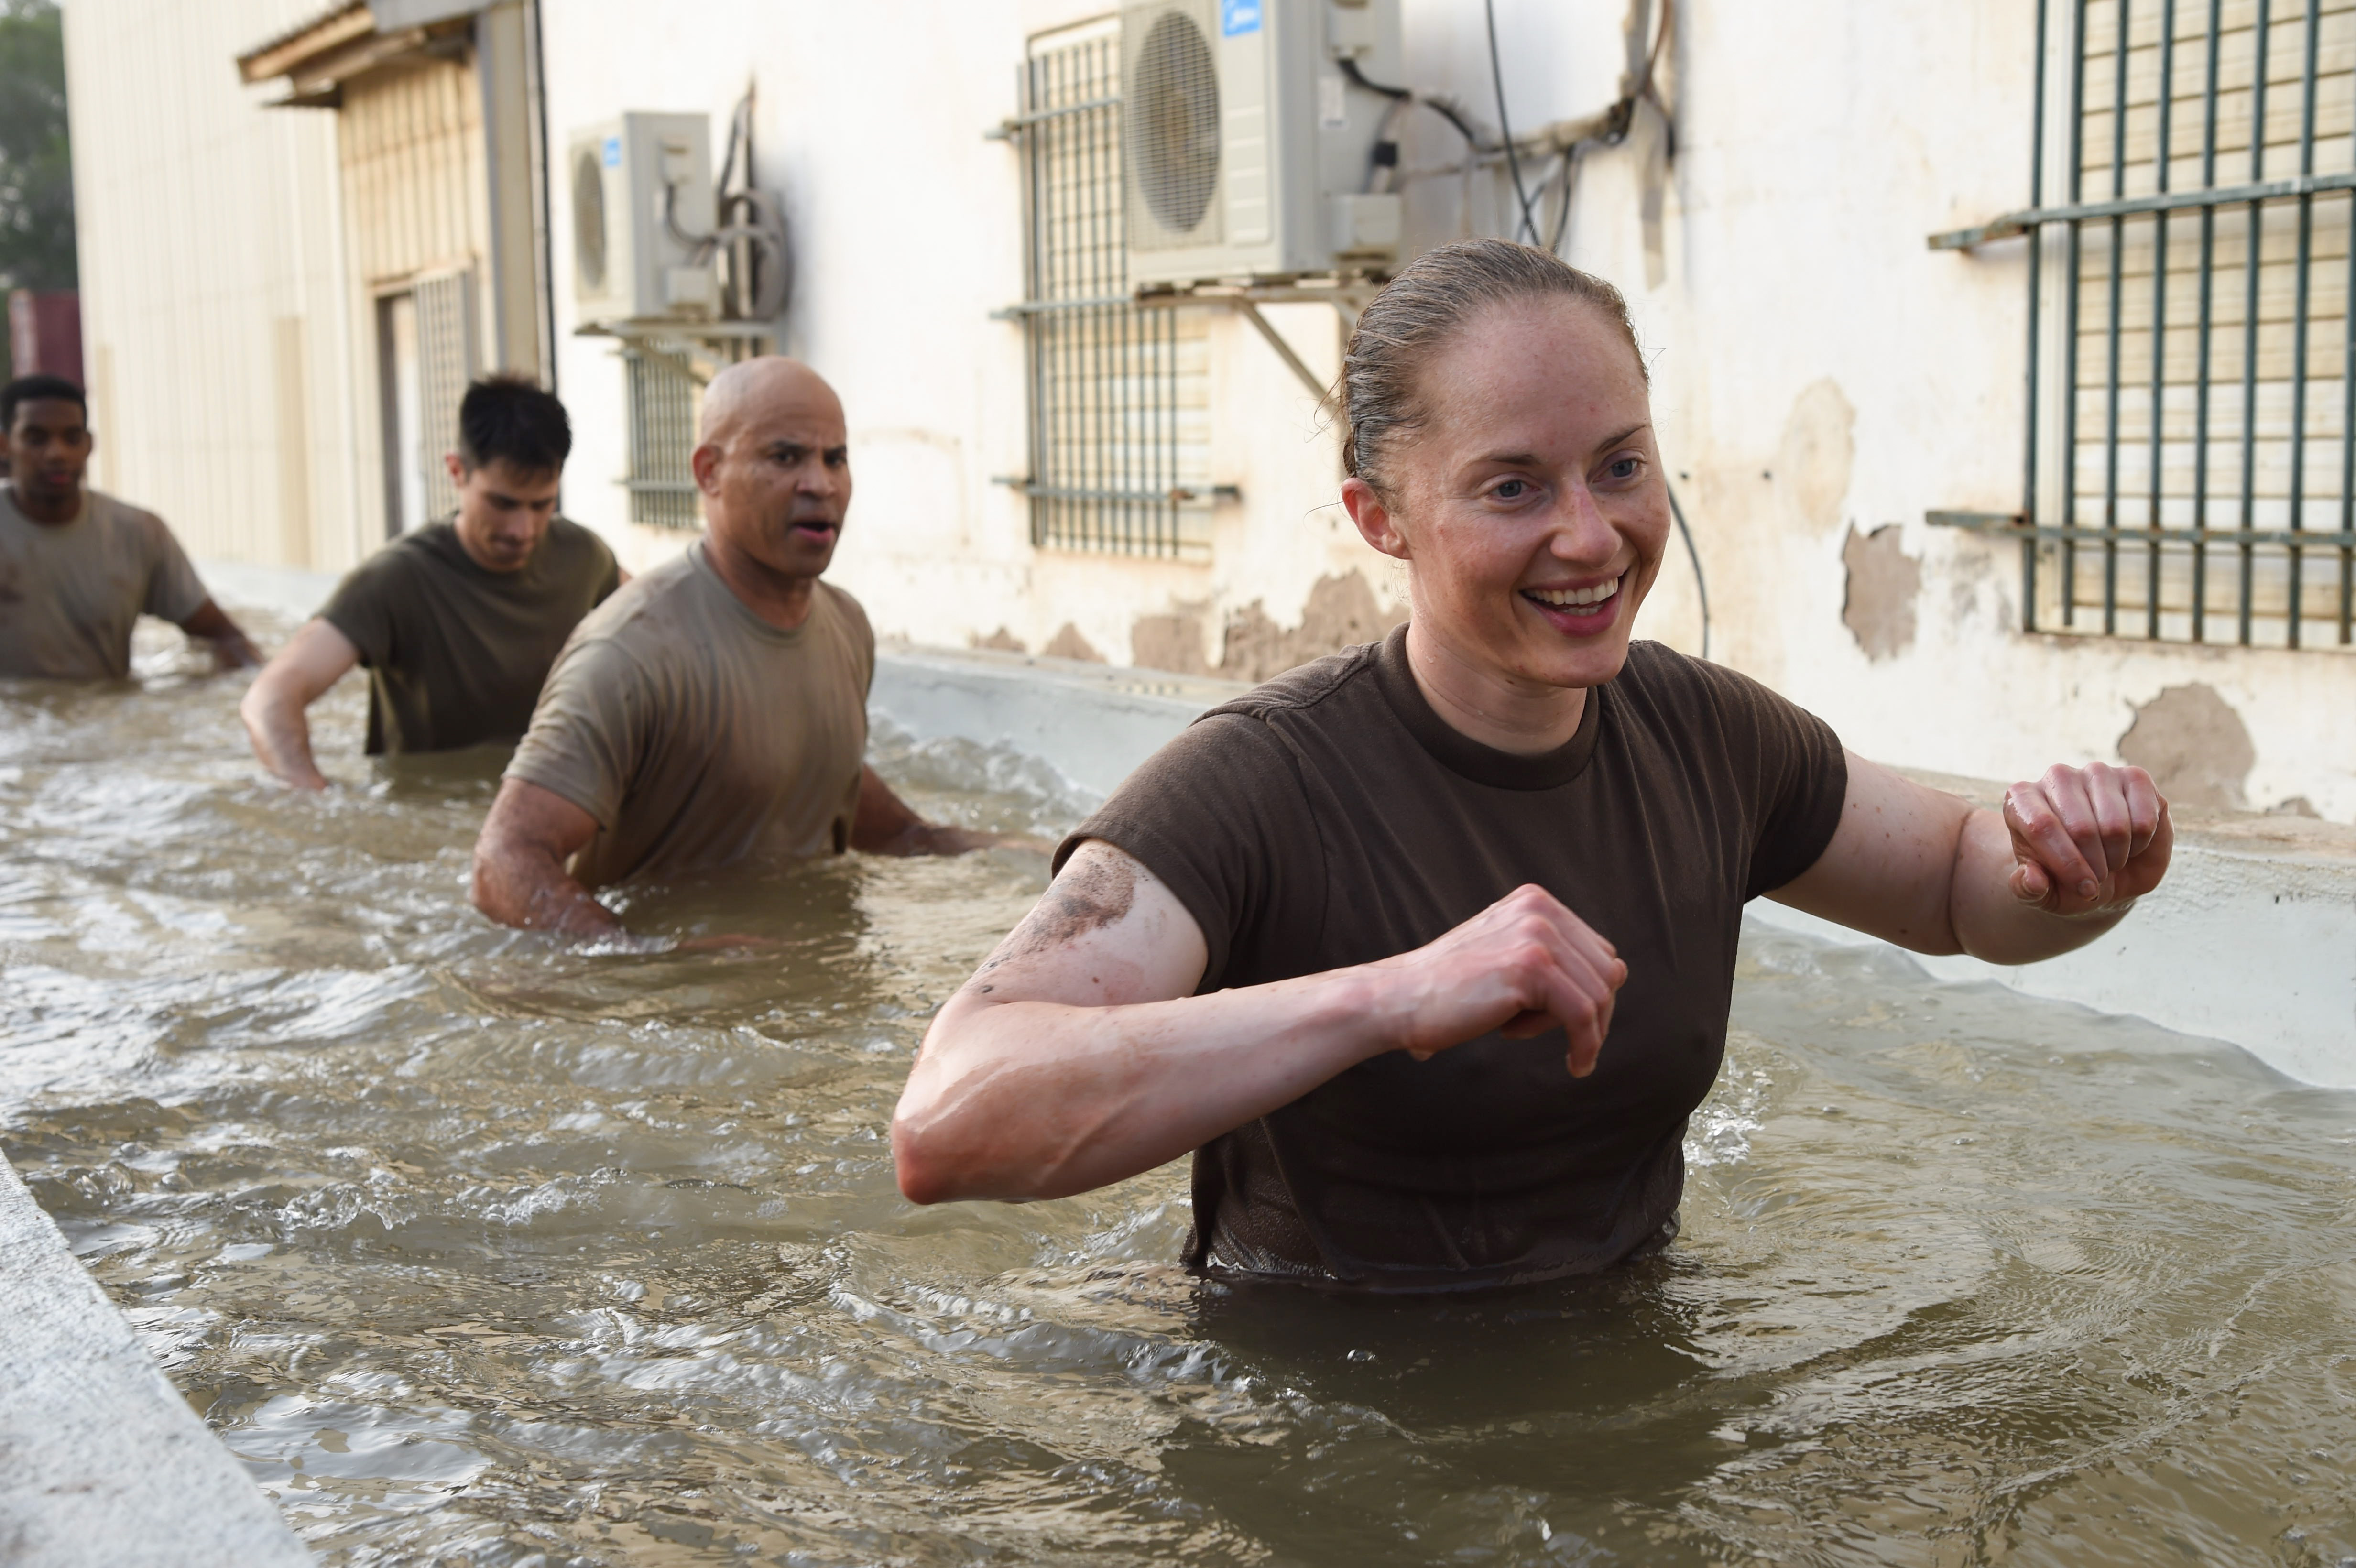 U.S. Navy Lt. Cmdr. Brighid Clark, Combined Joint Task Force-Horn of Africa Civil Affairs, wades through the resistance pool obstacle during a mud run hosted by the French military, Nov. 6, 2016, in Djibouti, Djibouti. The event allowed coalition forces from French, Japanese, and American teams to interact and build camaraderie while navigating a five kilometer course. The French 5th Marine Regiment team took first place. (U.S. Air Force photo by Staff Sgt. Penny Snoozy)